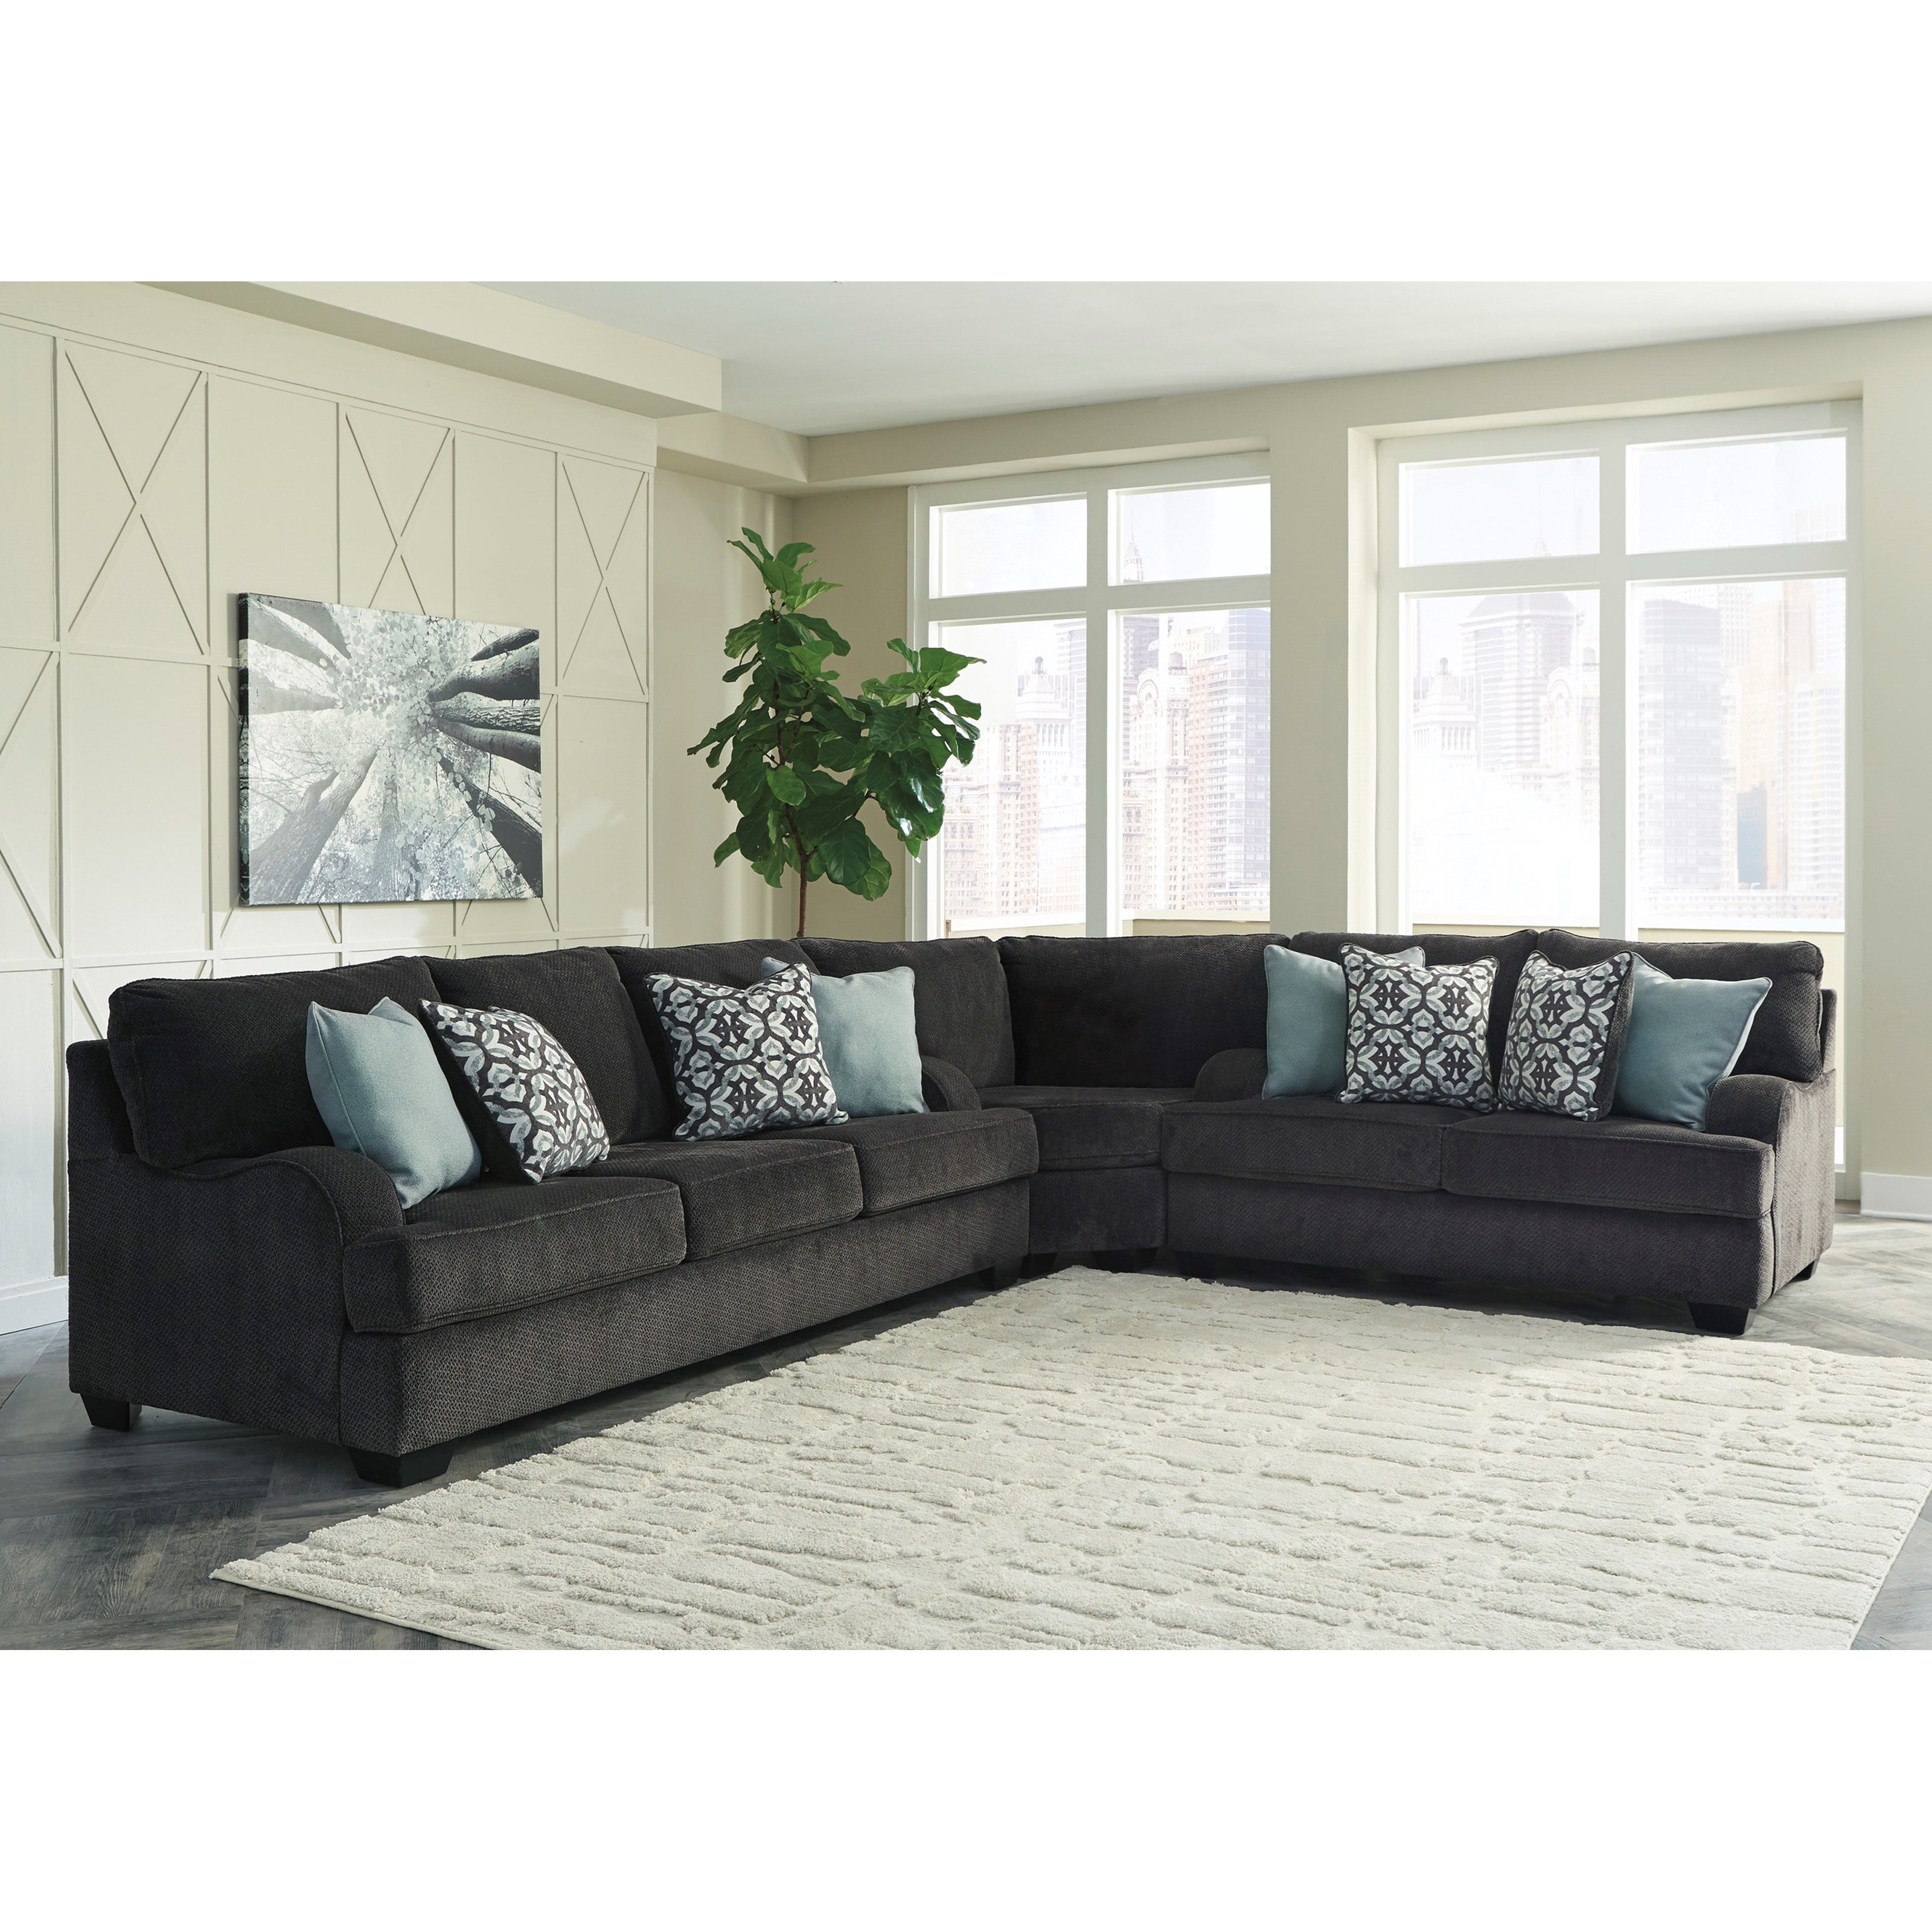 Charenton Sectional Sofa by Benchcraft at Standard Furniture